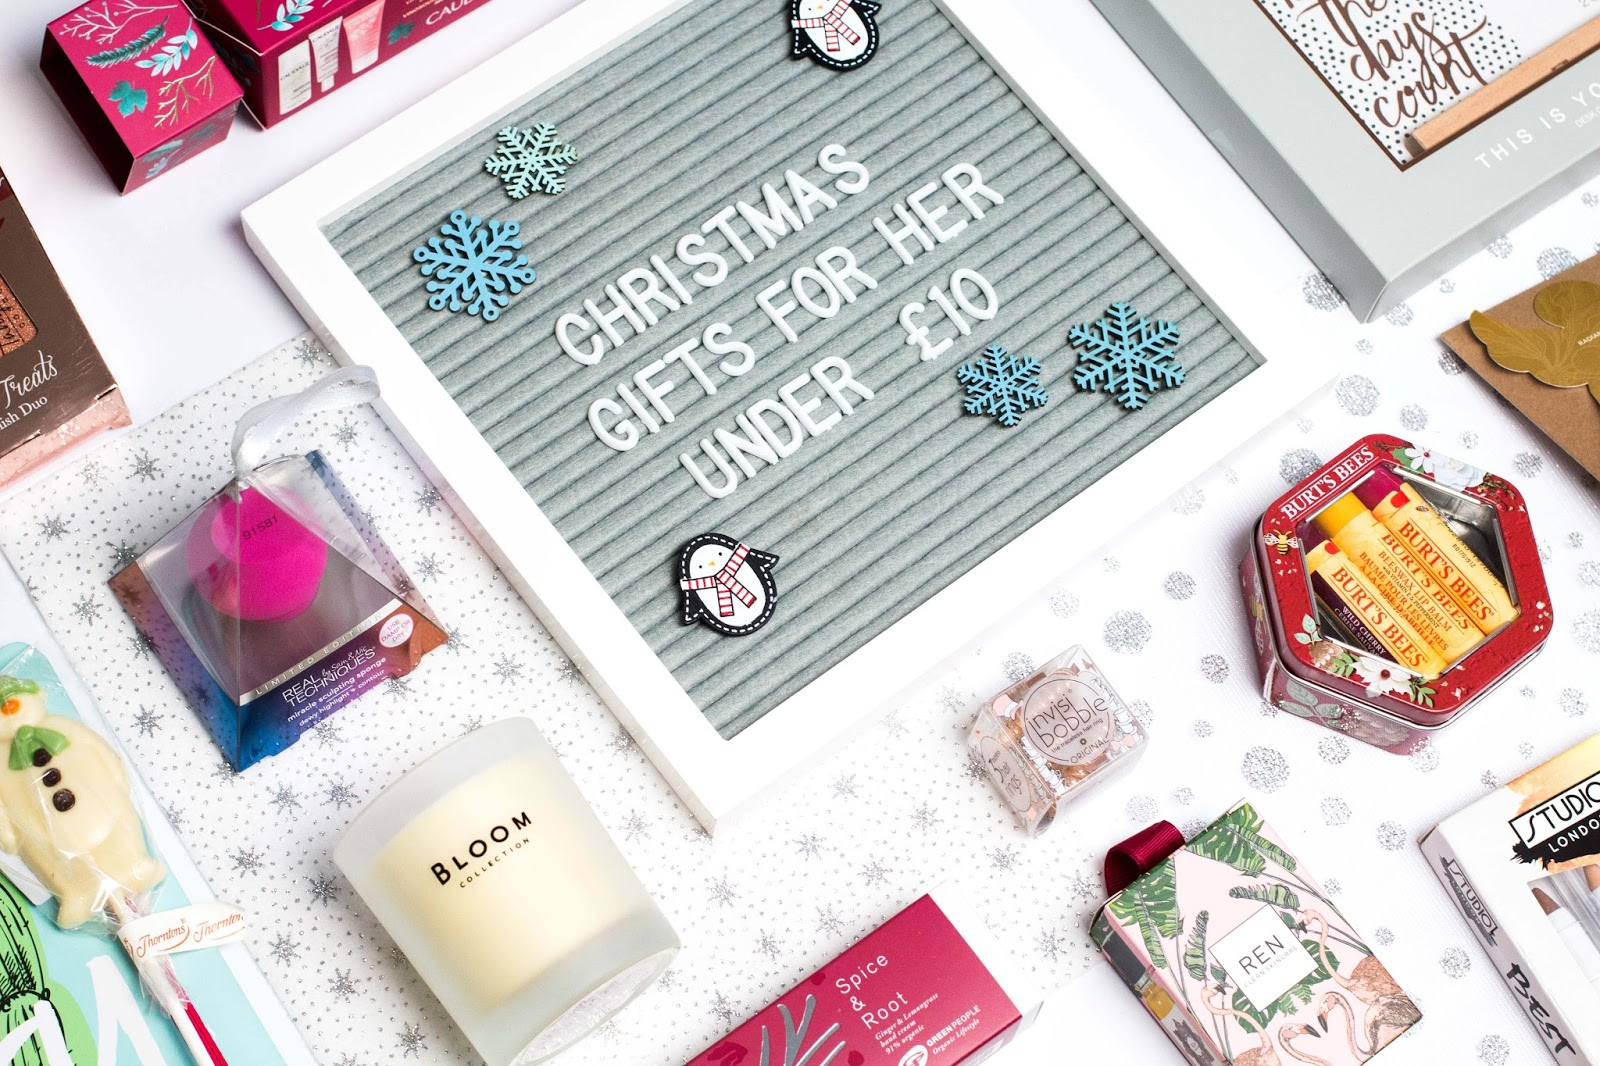 Gifts For Her Under £10 | Christmas Gift Guides 2017 | Hope, Freedom ...